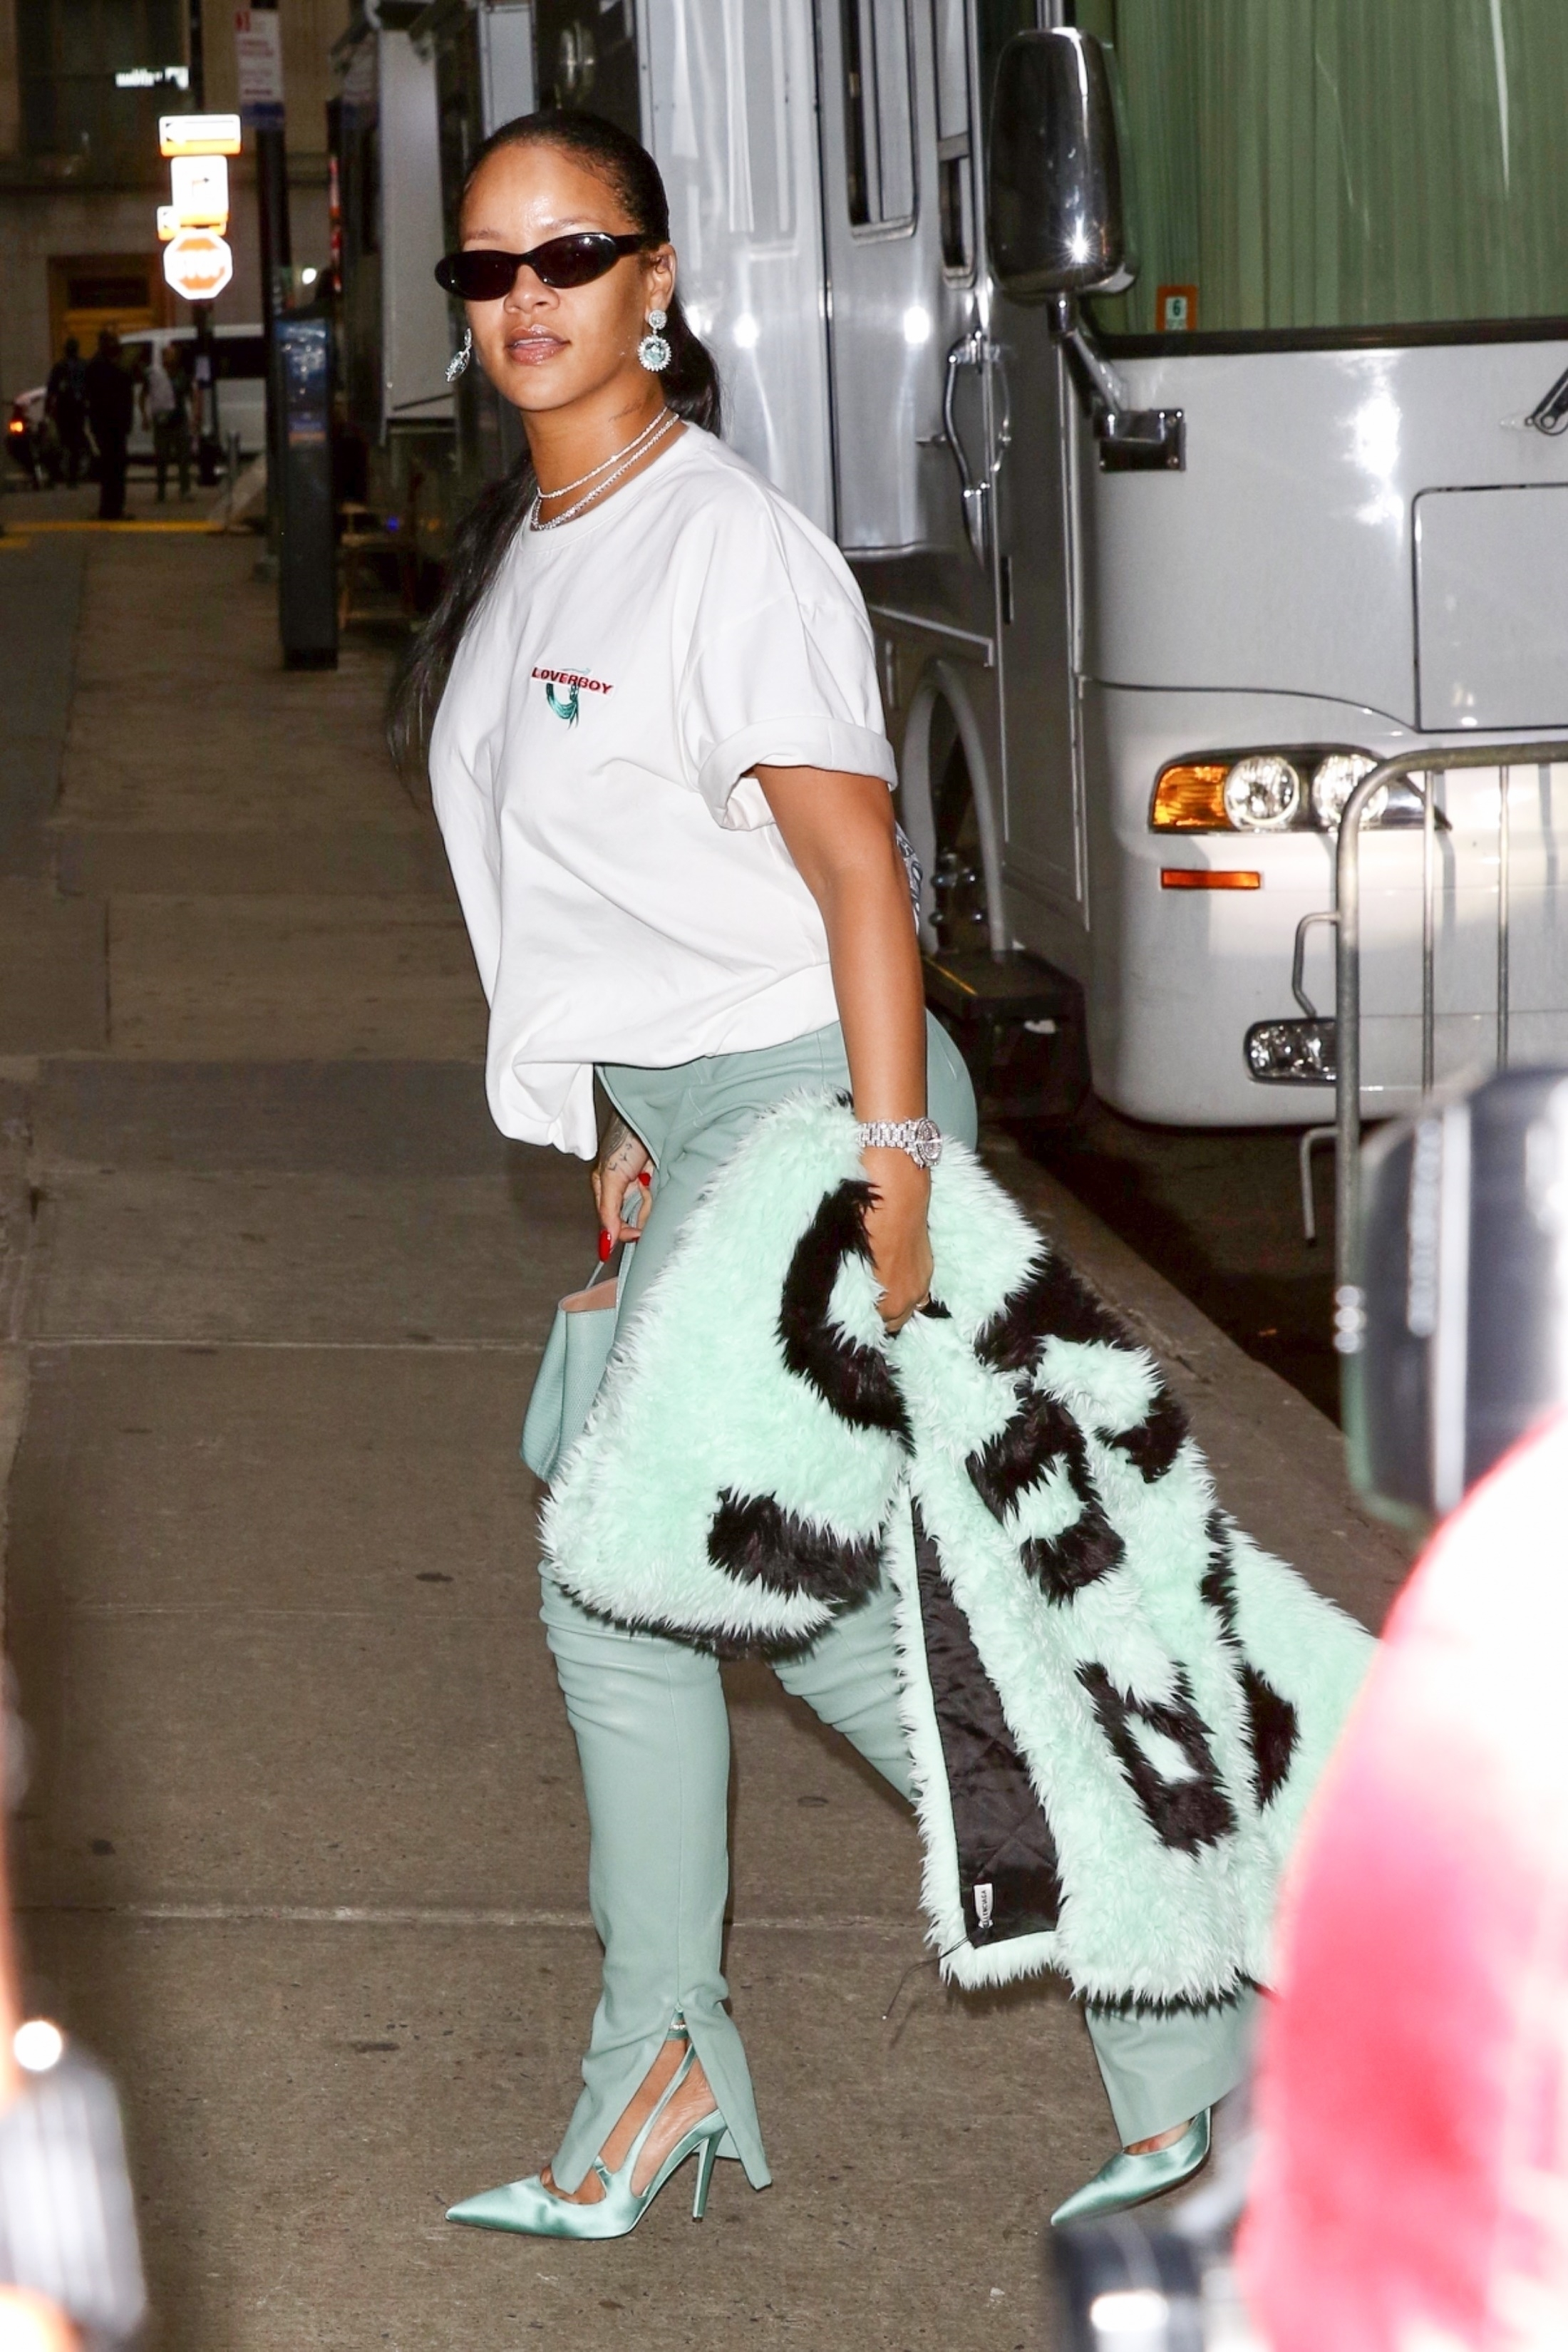 Rihanna out in New York before Diamond Ball on September 12, 2019